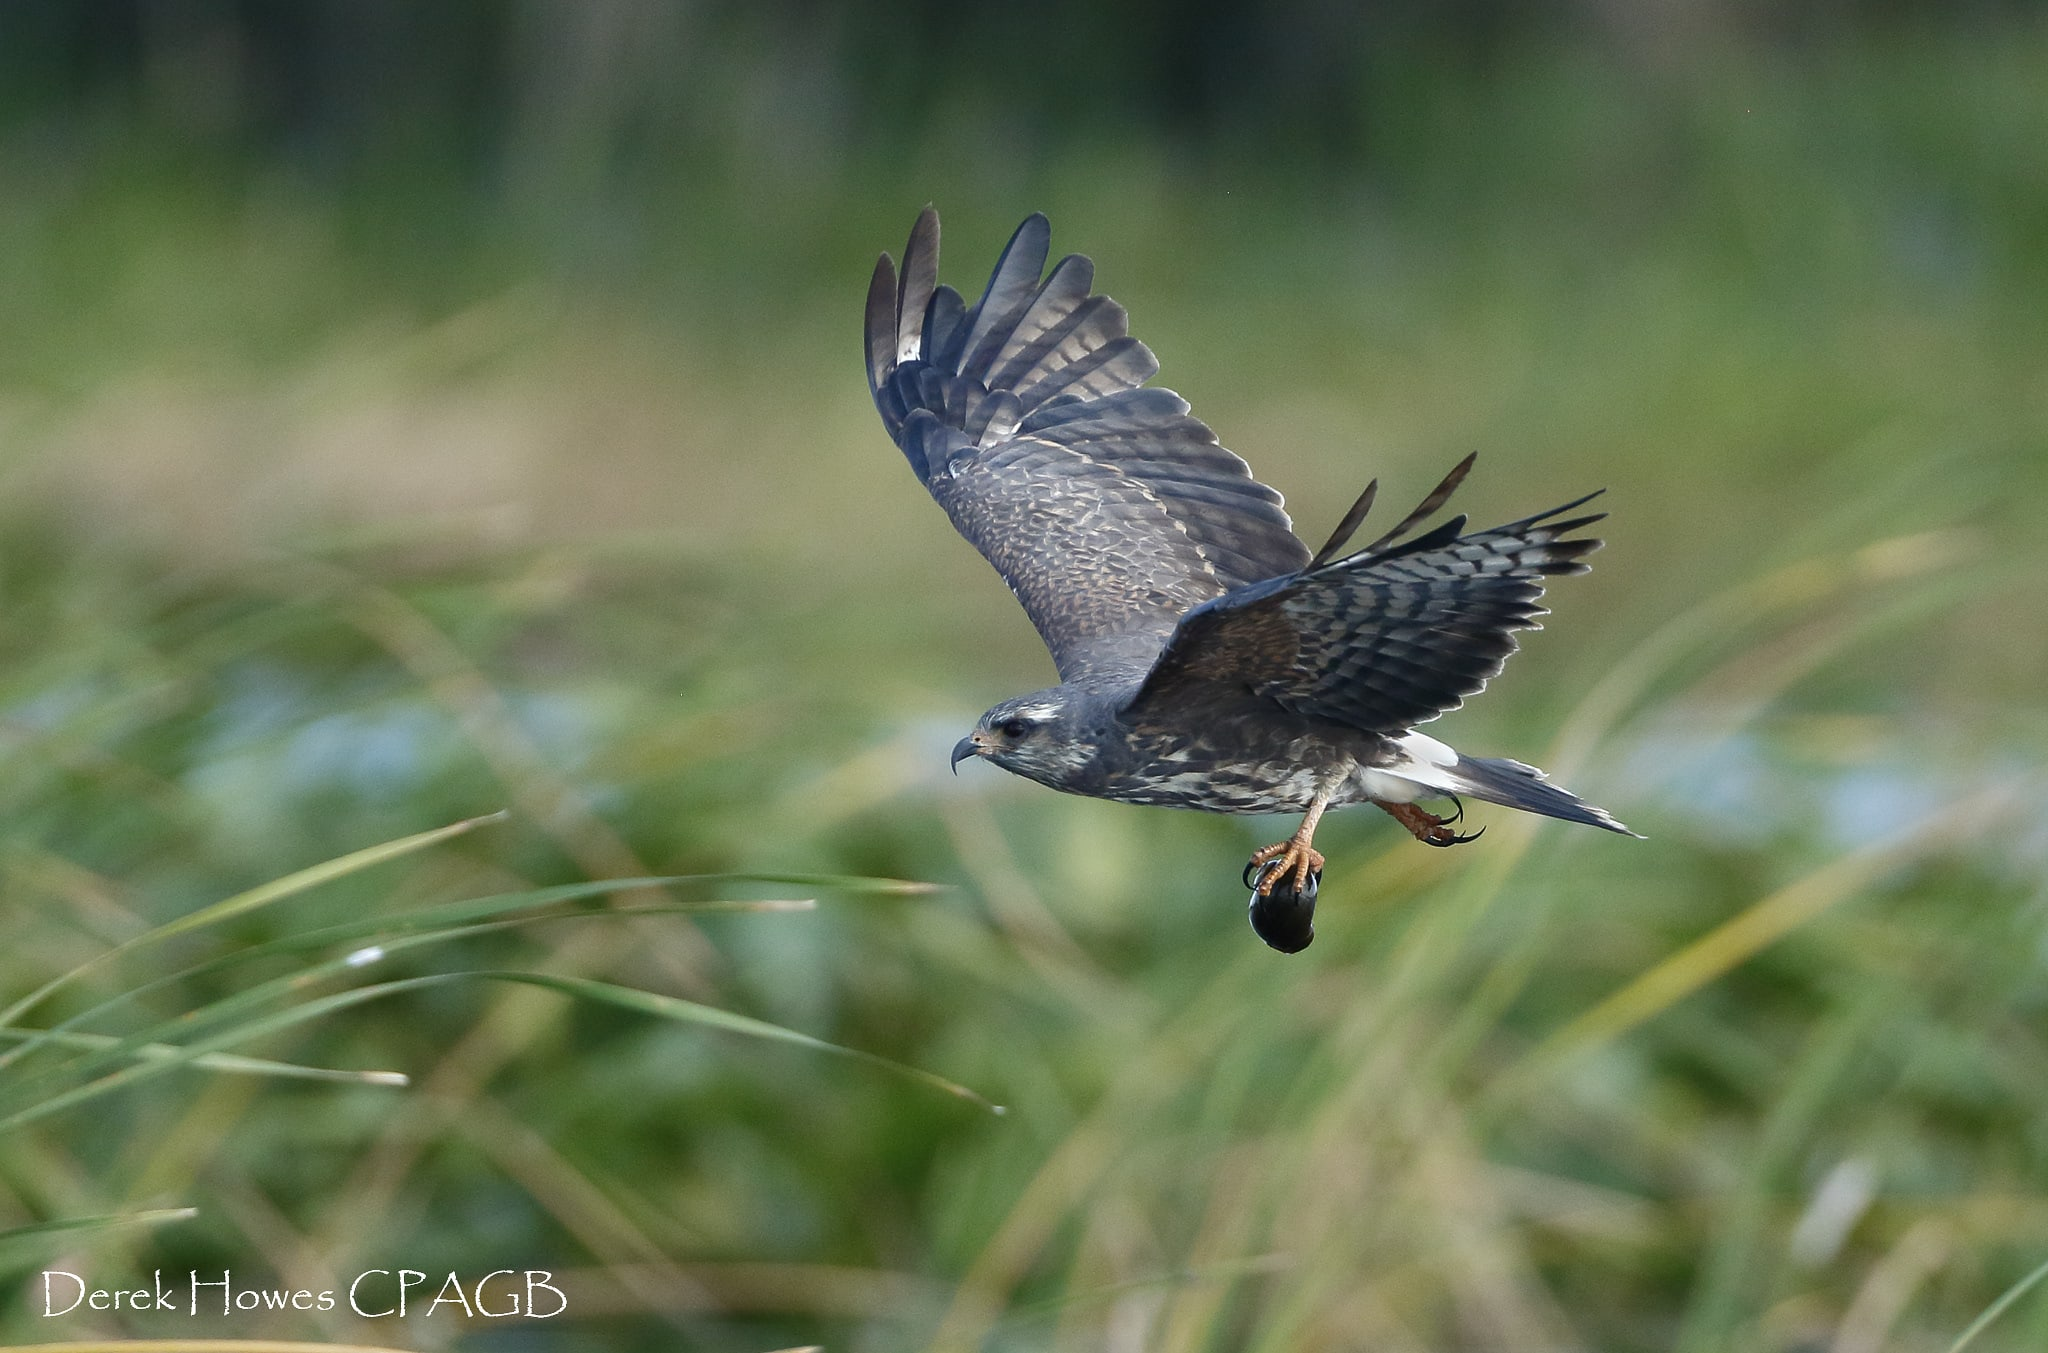 A snail kite image captured on one of the Floridian lakes, here seen clutching a freshly caught snail - photographed on the NaturesLens Osprey Photography Holiday conducted in Florida during April 2016